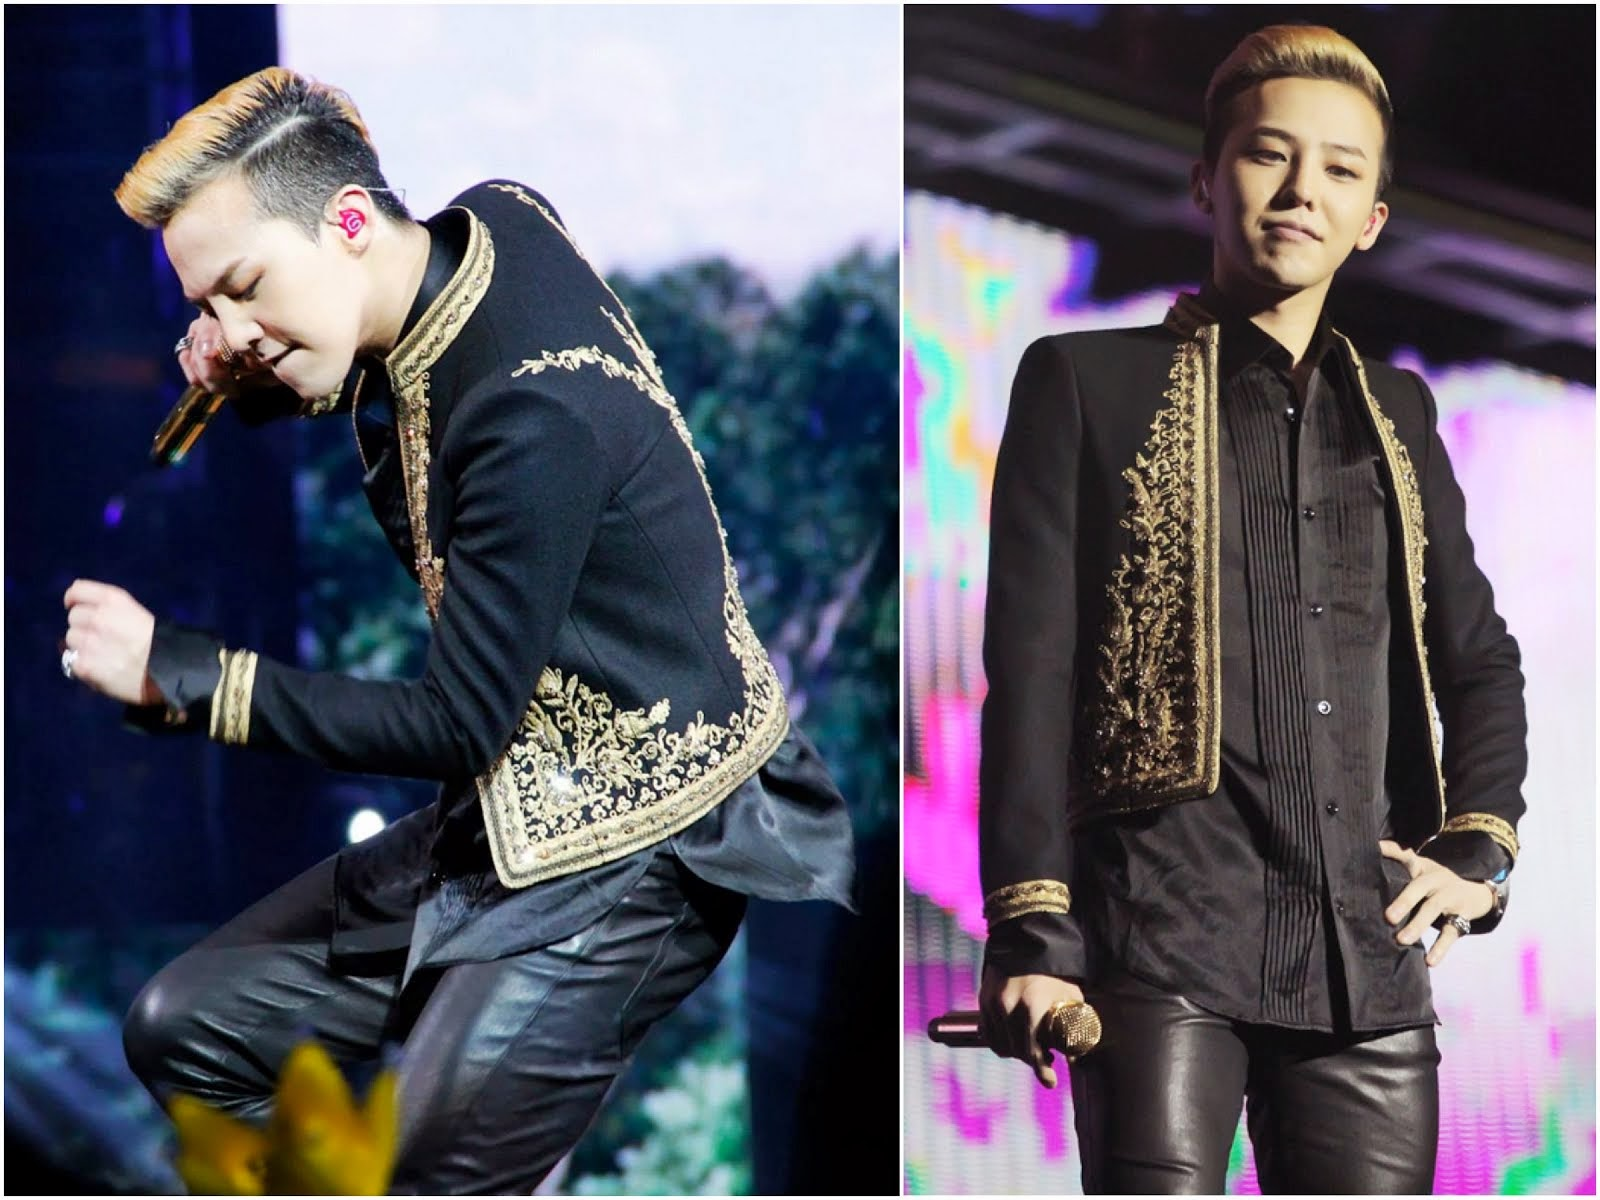 00O00 Menswear Blog: G-Dragon from Big Bang in Saint Laurent - World Tour 2013 Shanghai Concert May 2013